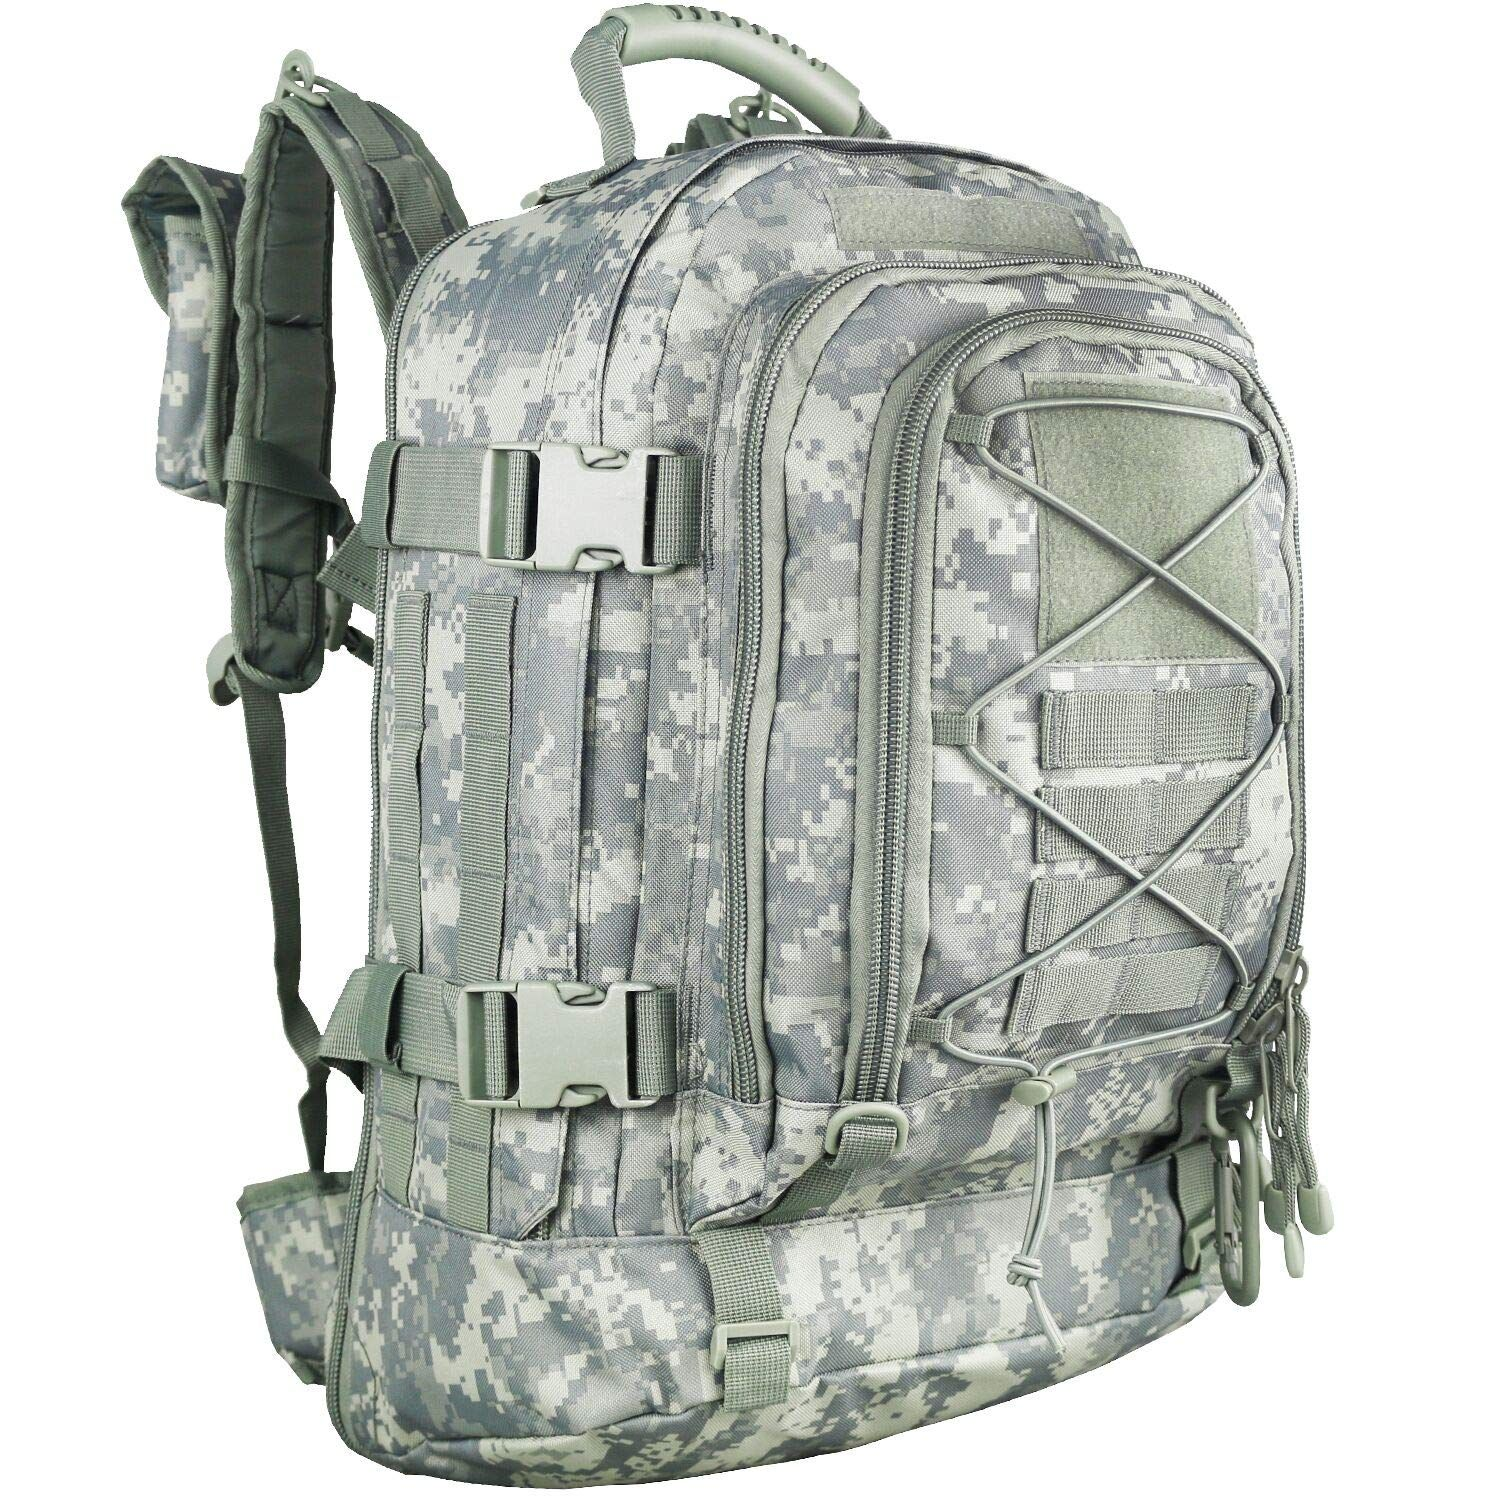 PANS Military Expandable Travel Backpack Tactical Waterproof Outdoor 3-Day Bag,Large,Molle System for School,Hiking,Camping,Trekking,Outdoor Sports,Work